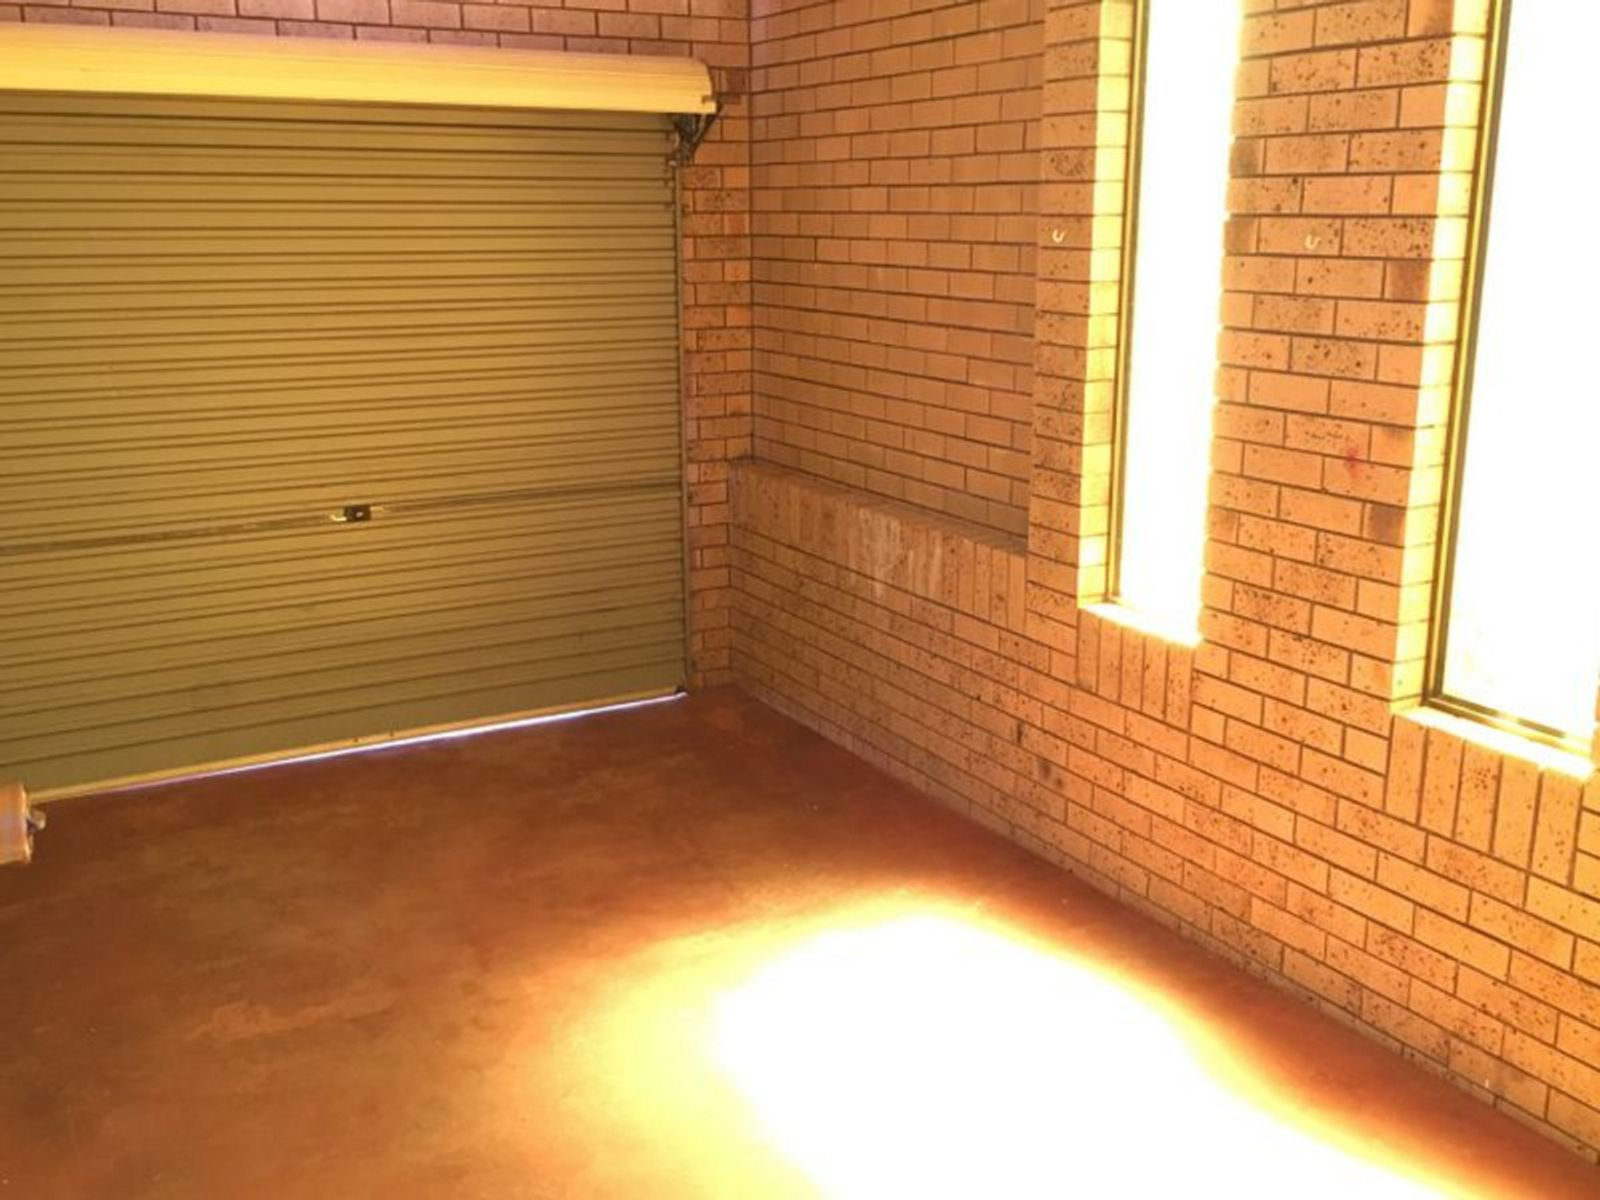 1/13 Maplewood Street, Darling Heights, QLD 4350